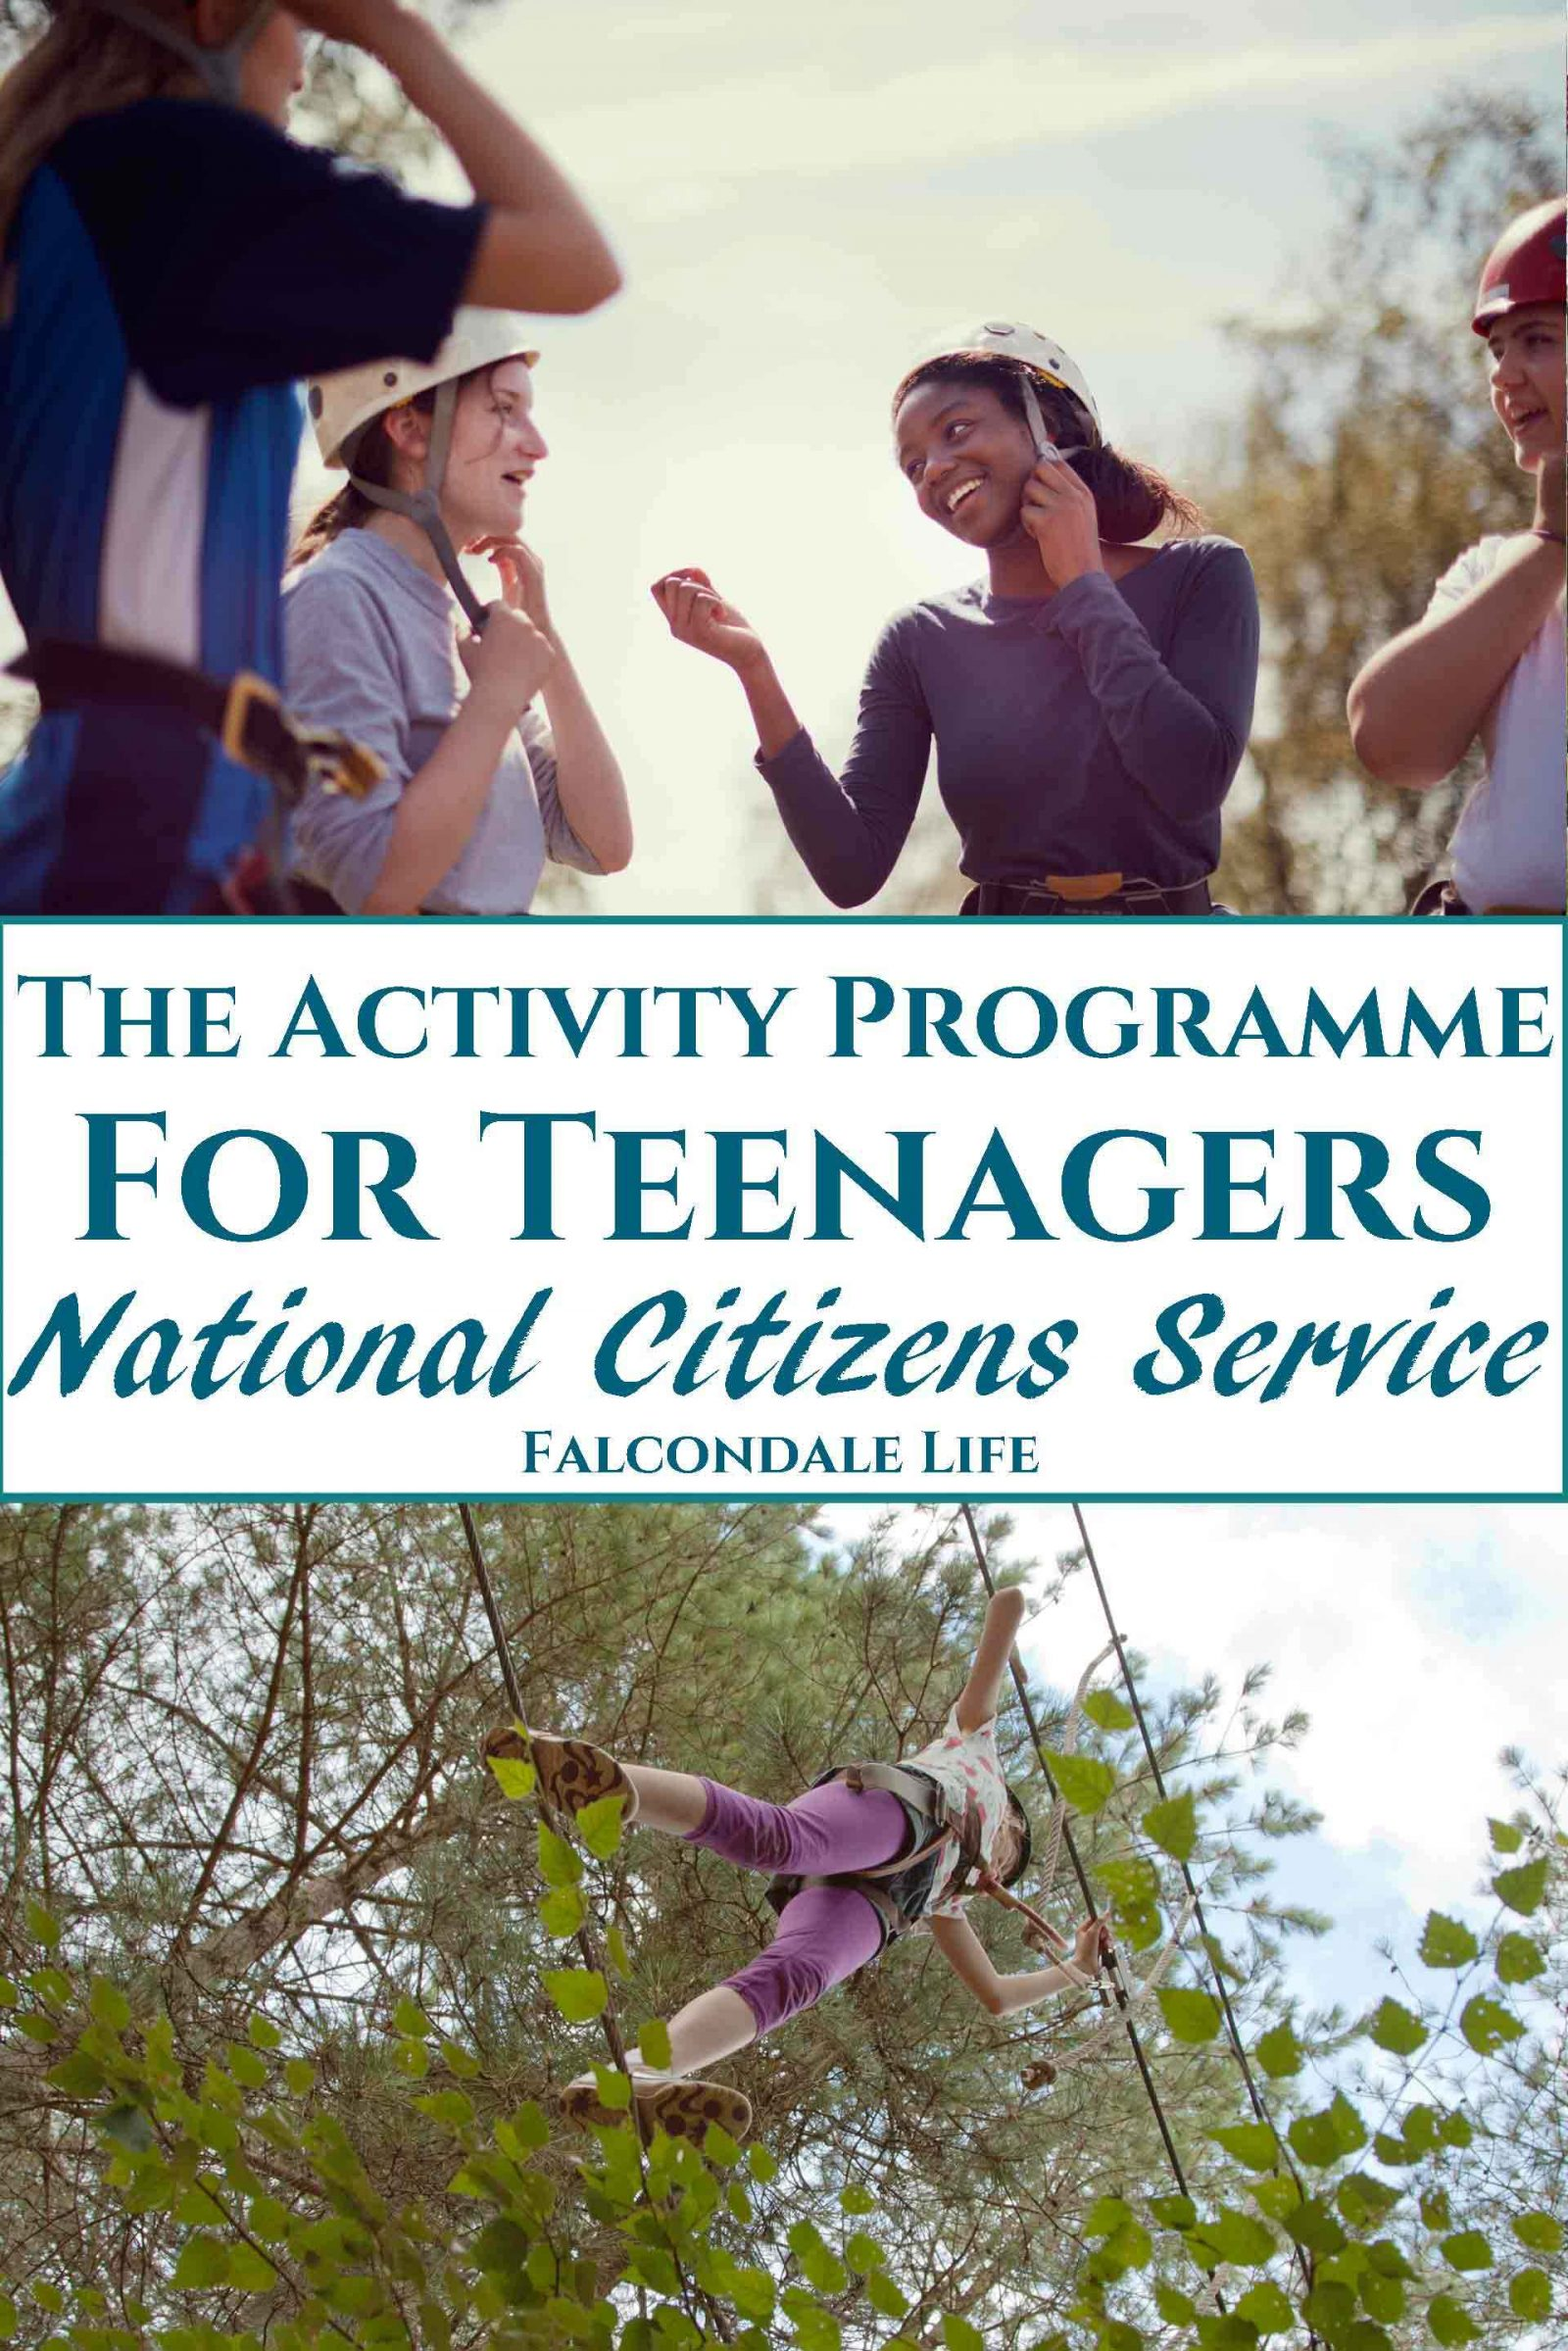 Join the Activity Programme for Teenagers: National Citizens Service on Falcondale Life blog. NCS provides a unique opportunity for teenagers to take part in a summer activity programme at the end of Year 11. The 2 to 4 week residential costs just £50 and includes outward bound activities, life skills, community action and a celebration at the end. Book now. Image description: Looking up at young person on high ropes course in the trees., young people putting on helmets and blog title.